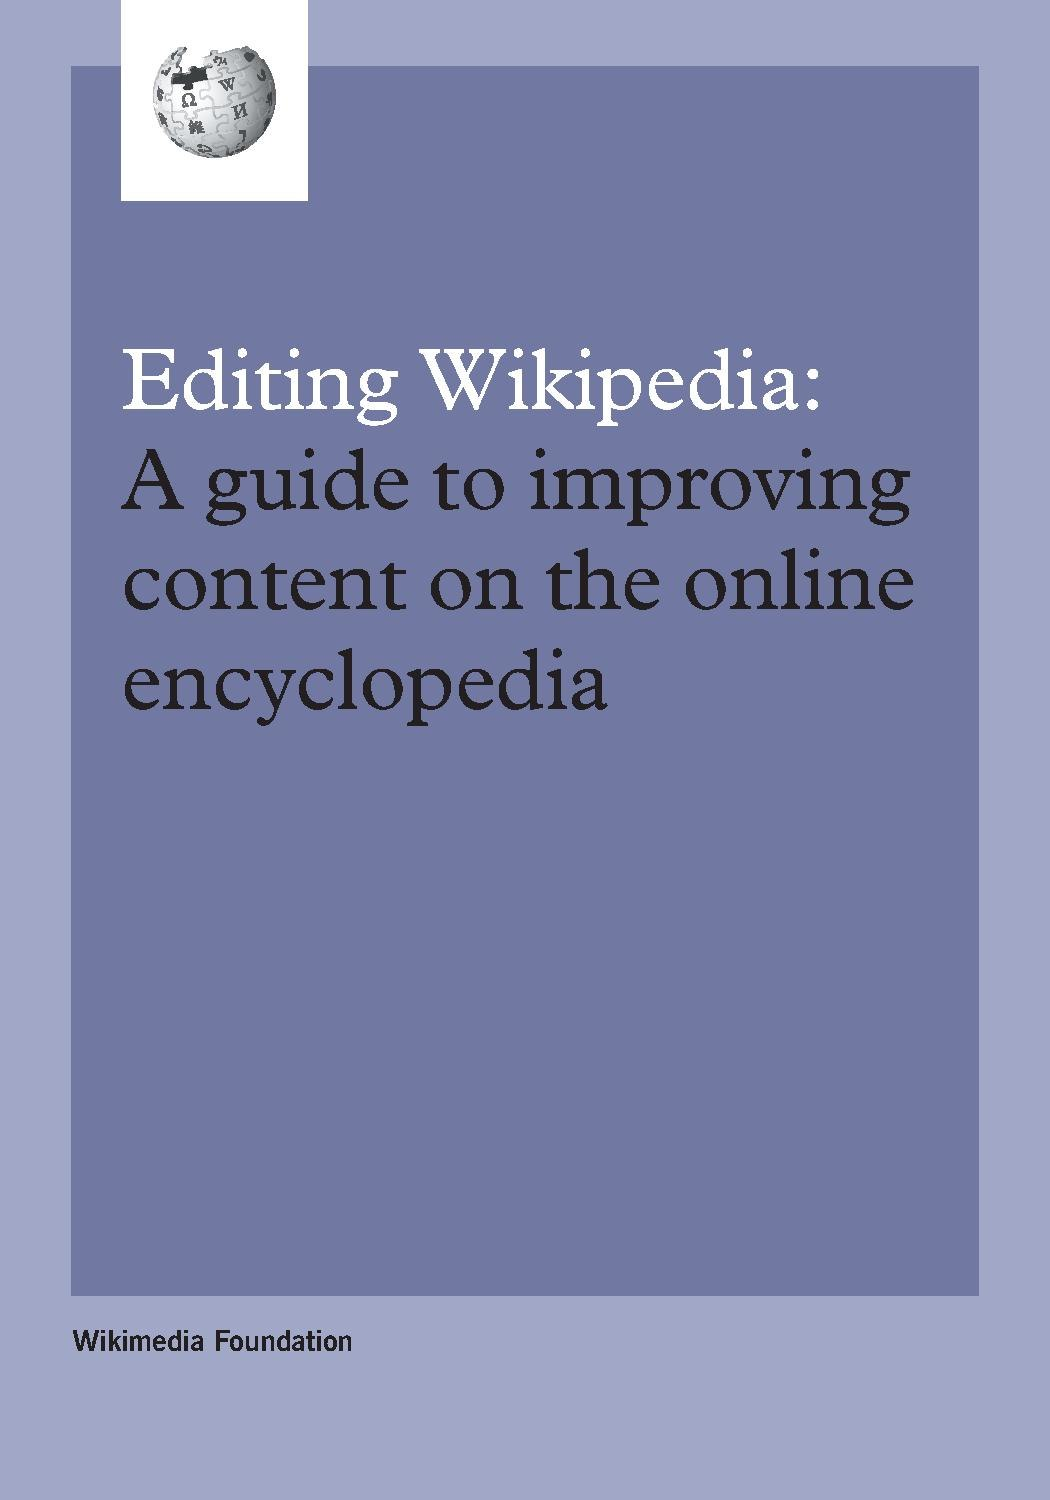 Welcome to Wikipedia